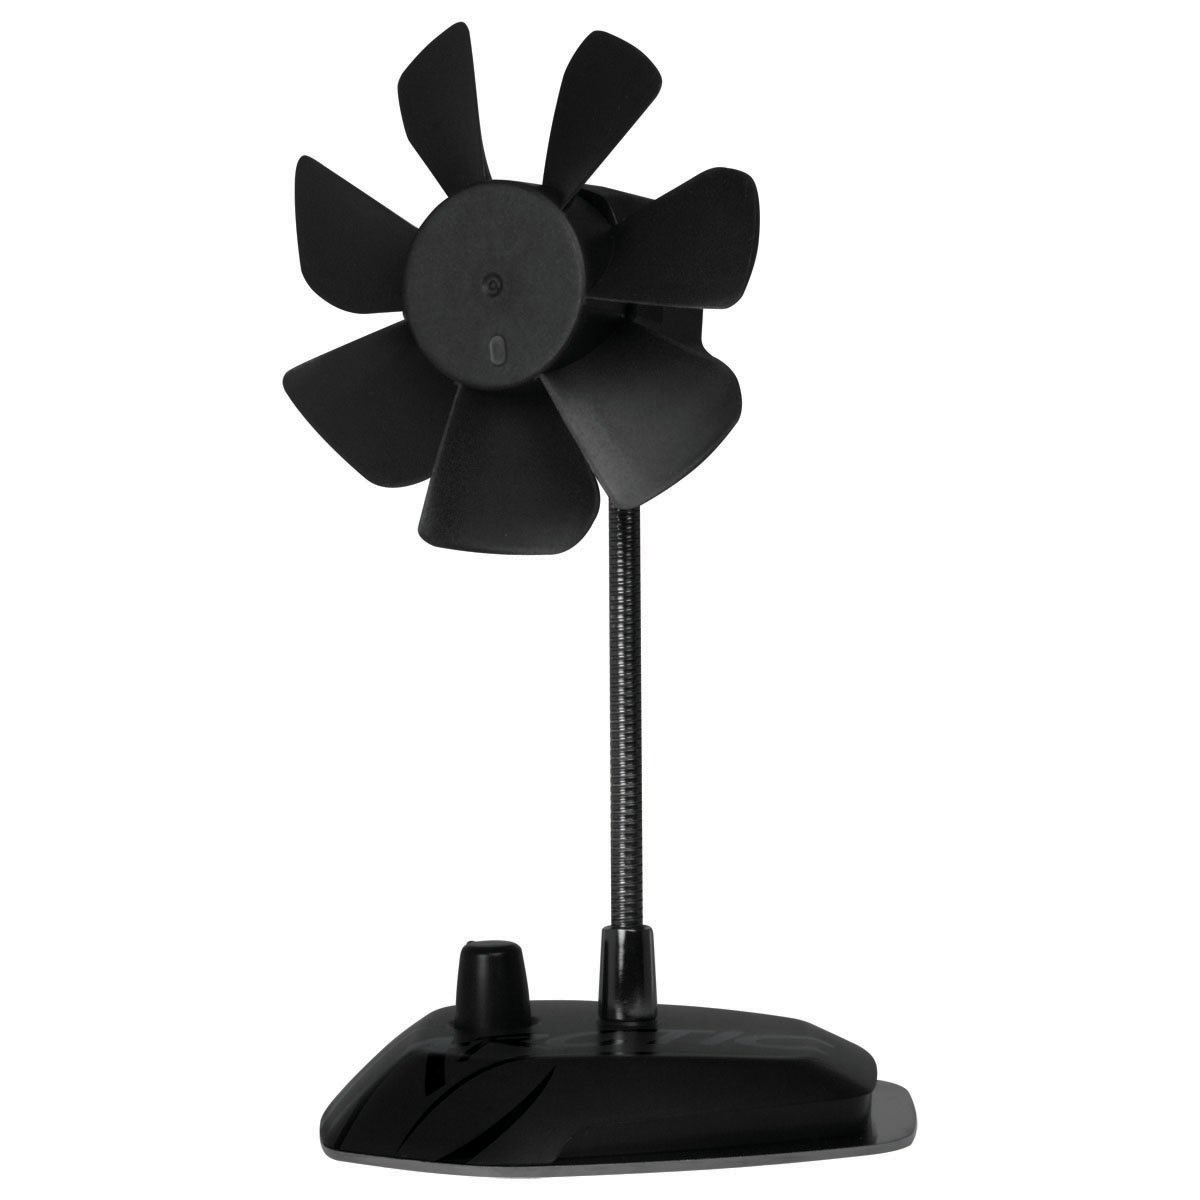 ARCTIC Breeze – USB Desktop Fan with Flexible Neck and Adjustable Fan Speed I Portable Desk Fan for Home, Office I Silent USB Fan I Fan Speed